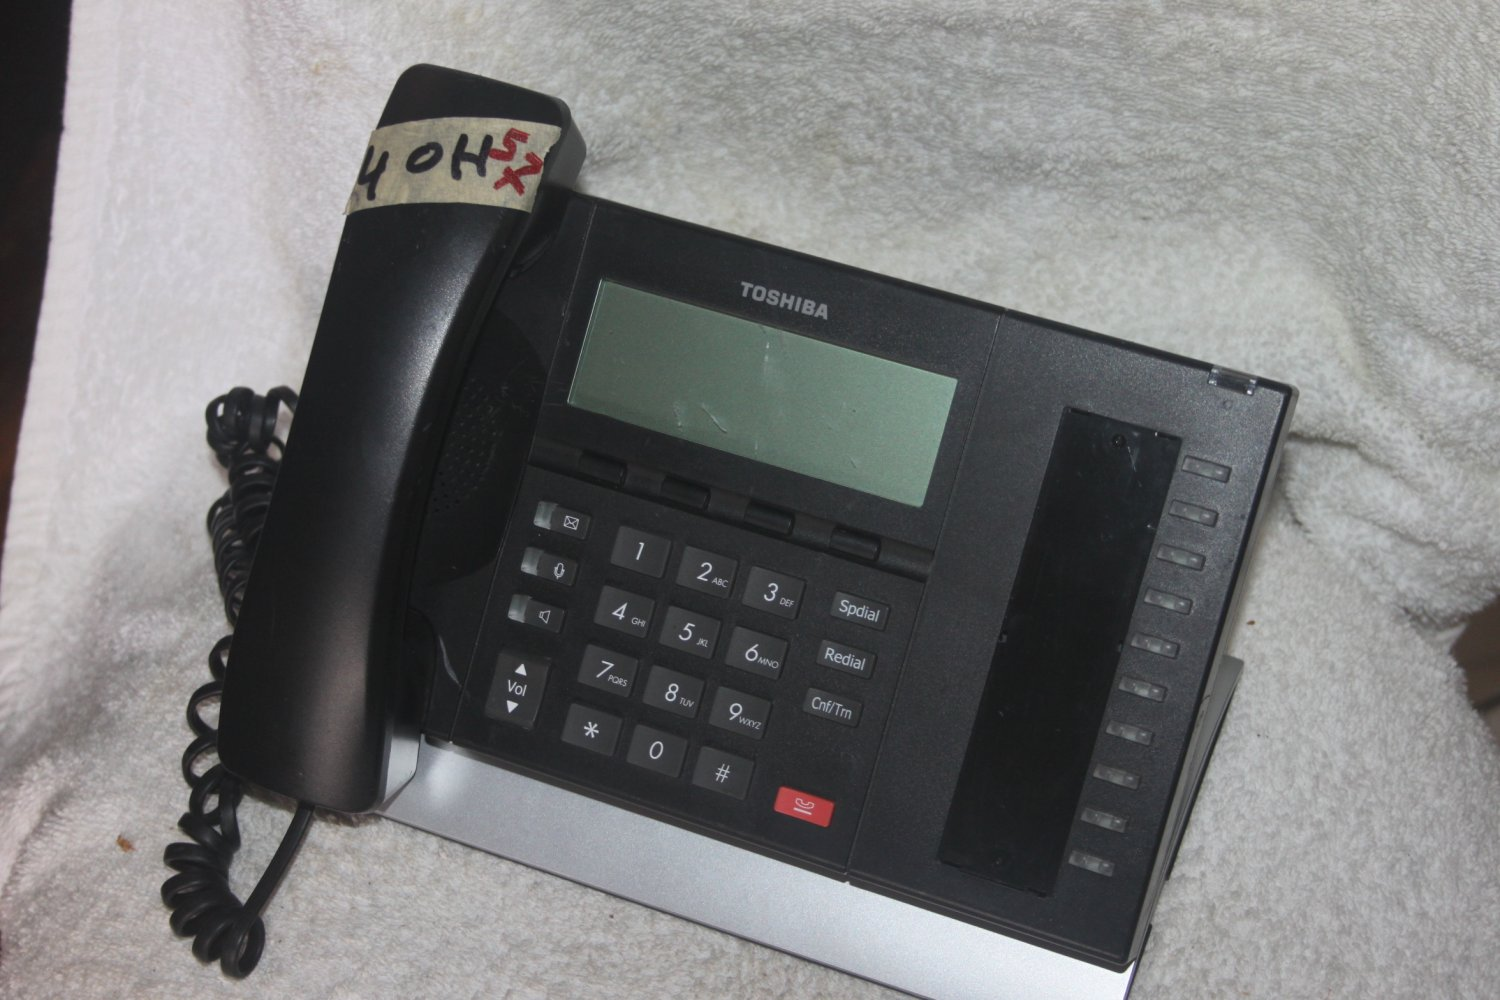 TOSHIBA STRATA DP5022-SDM 10 BUTTON BUSINESS LCD SPEAKER PHONE 5/16